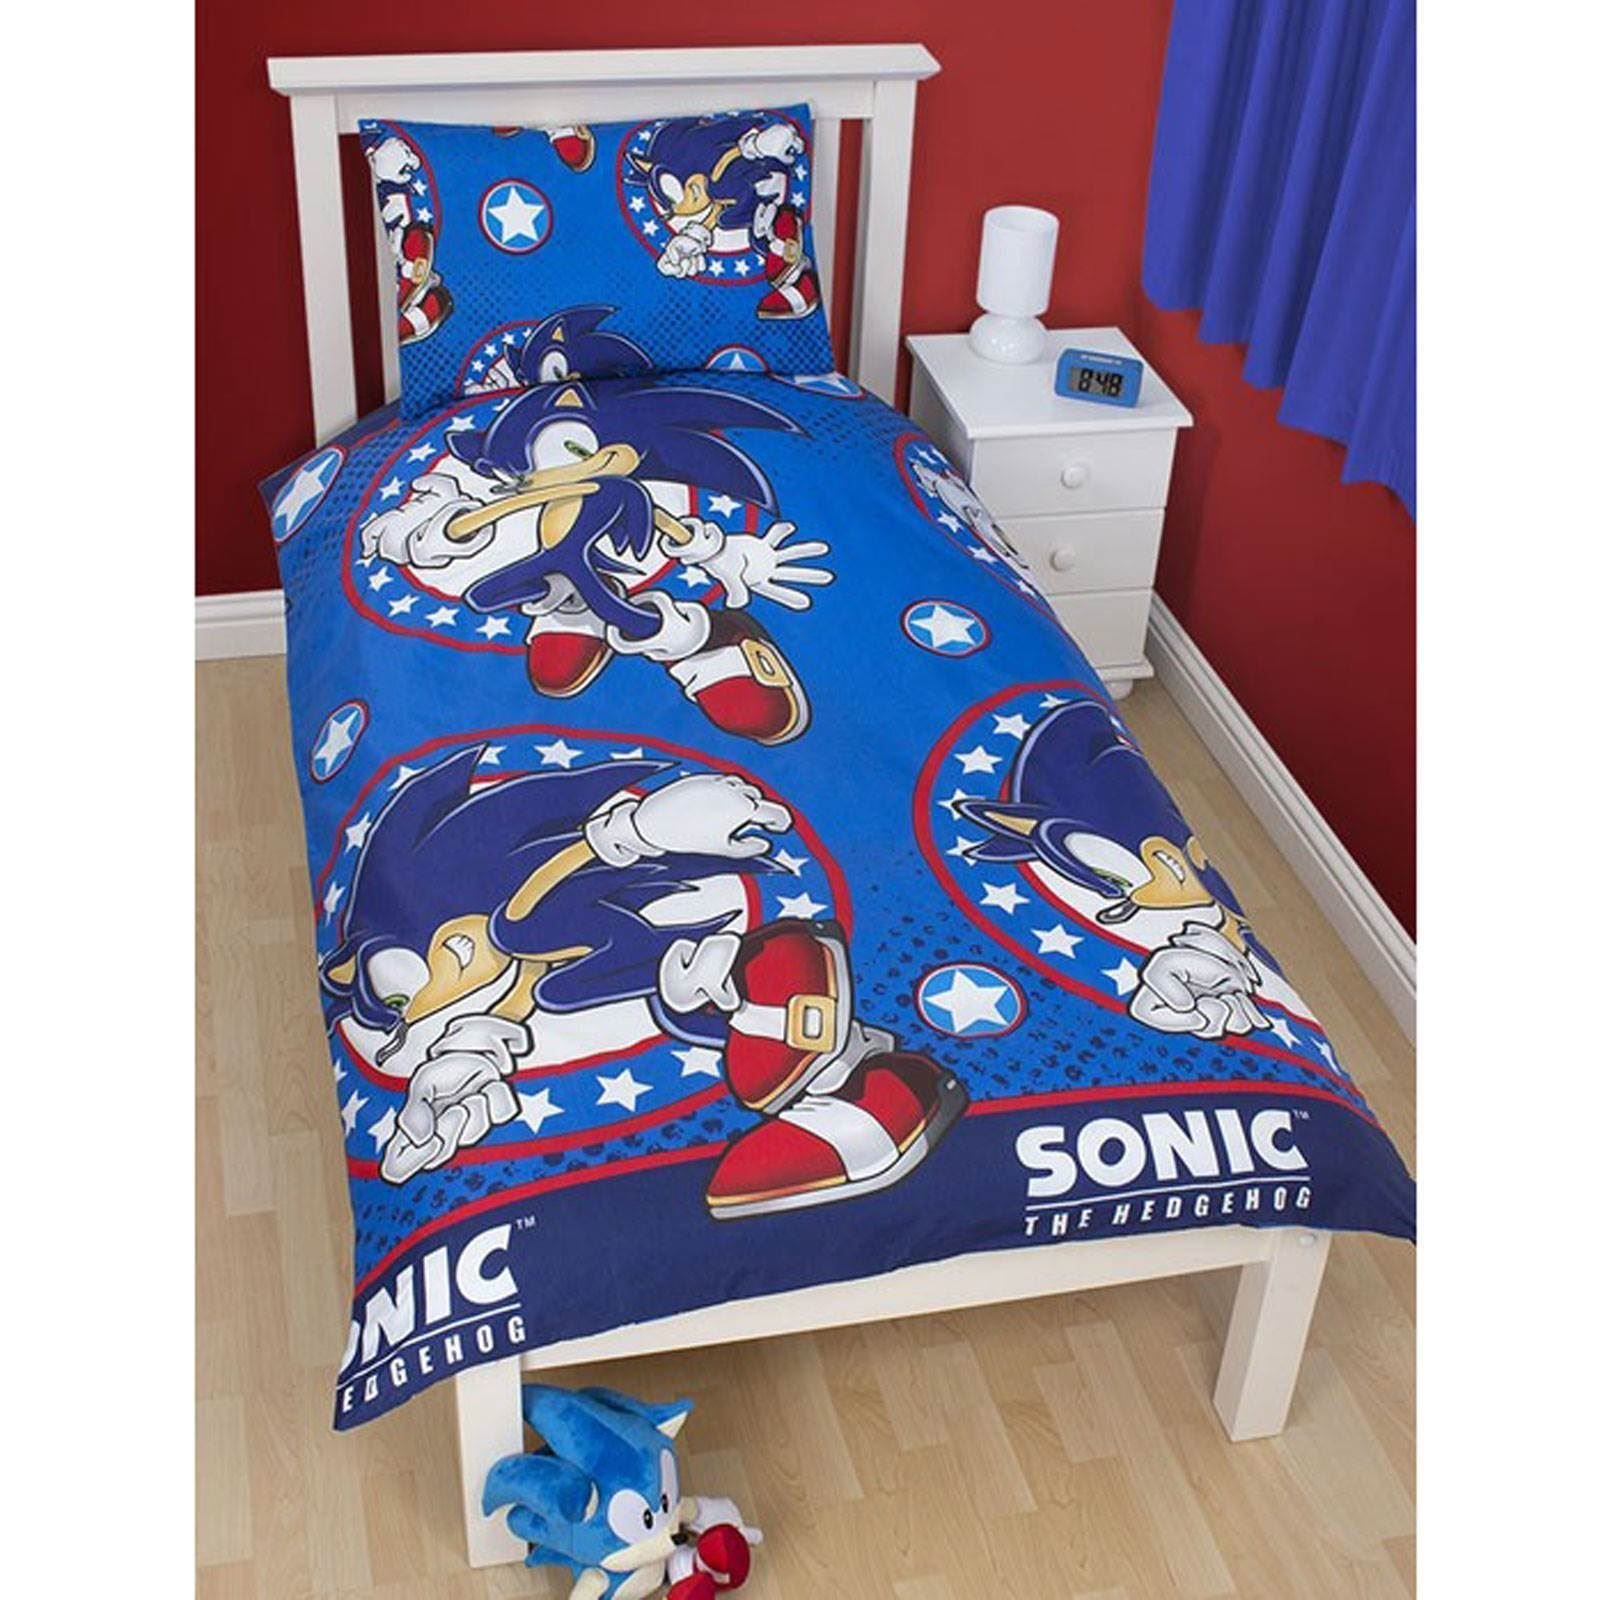 Best Sonic The Hedgehog Bedroom – Single Double Duvet Covers Blankets Towels Ebay With Pictures